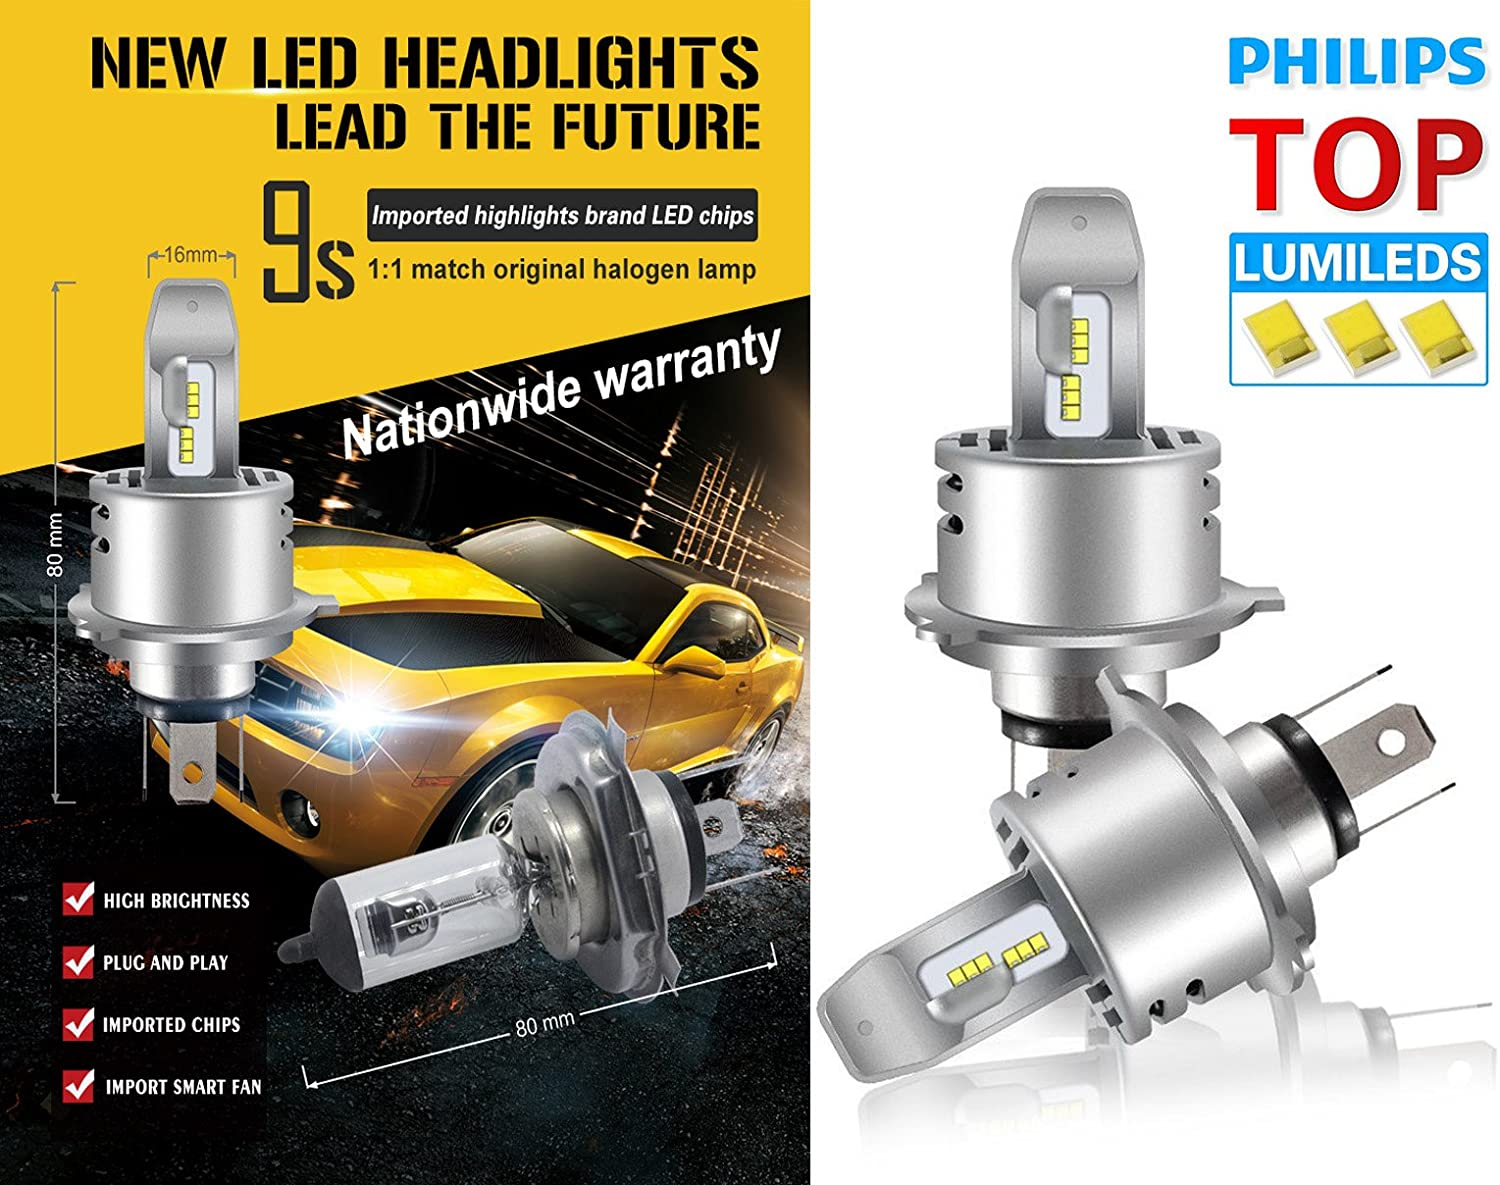 12000LM Lumileds Chips Extremely Bright 6500K All-in-One Anti-Flicker Conversion Kit Halogen Bulbs Replacement 2 Years Warranty H1 Led Headlight Bulb Cool White